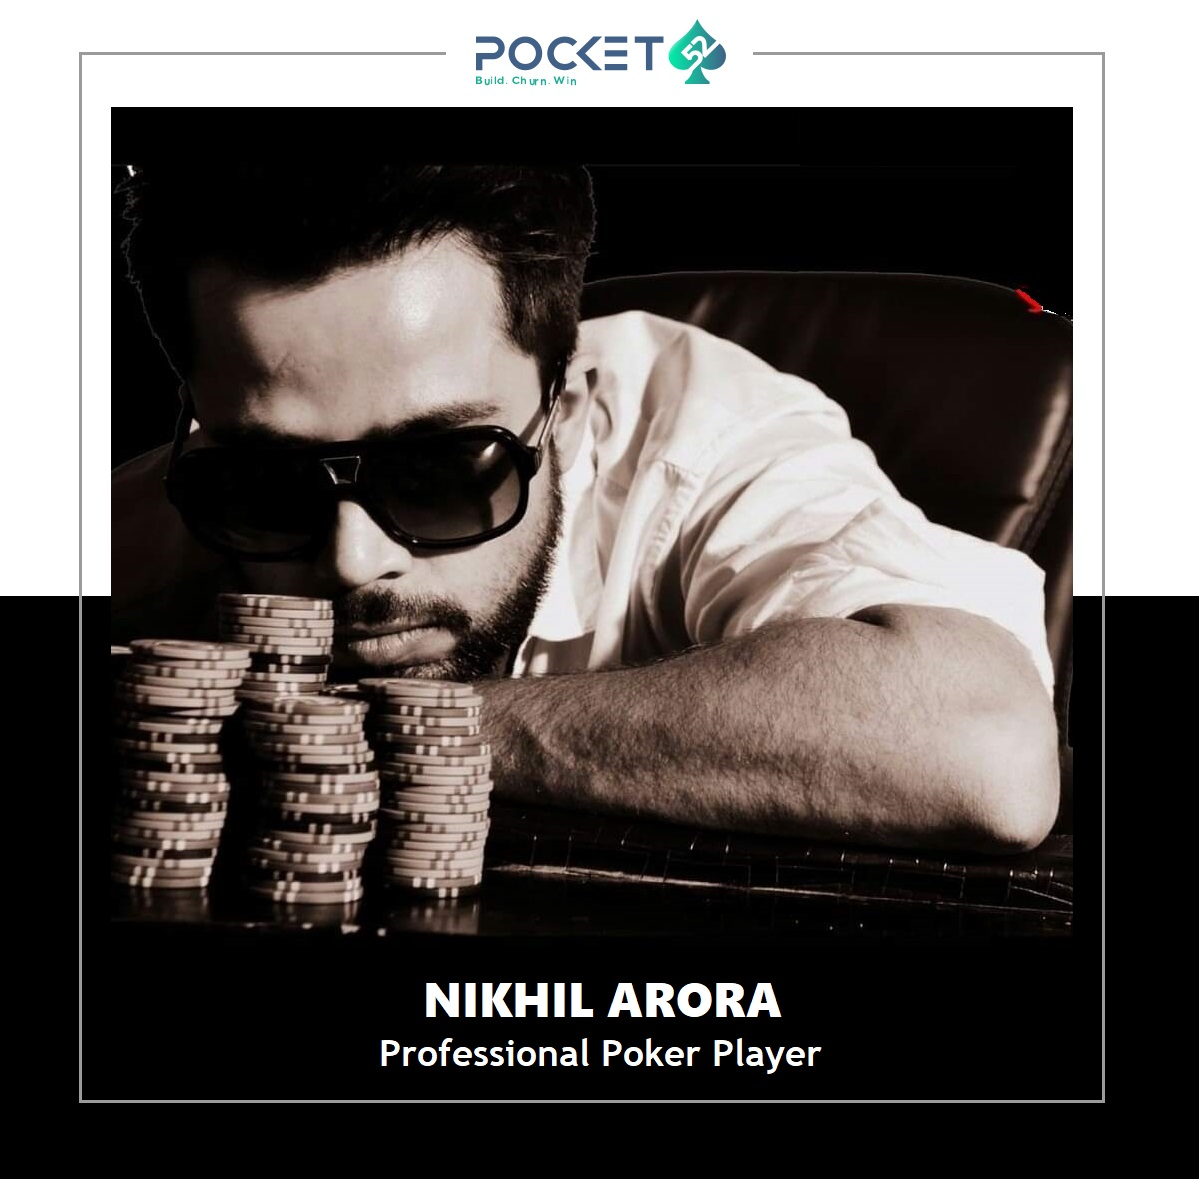 """High Risks, Higher Rewards"" – Nikhil Arora – Interview With a Poker Player"